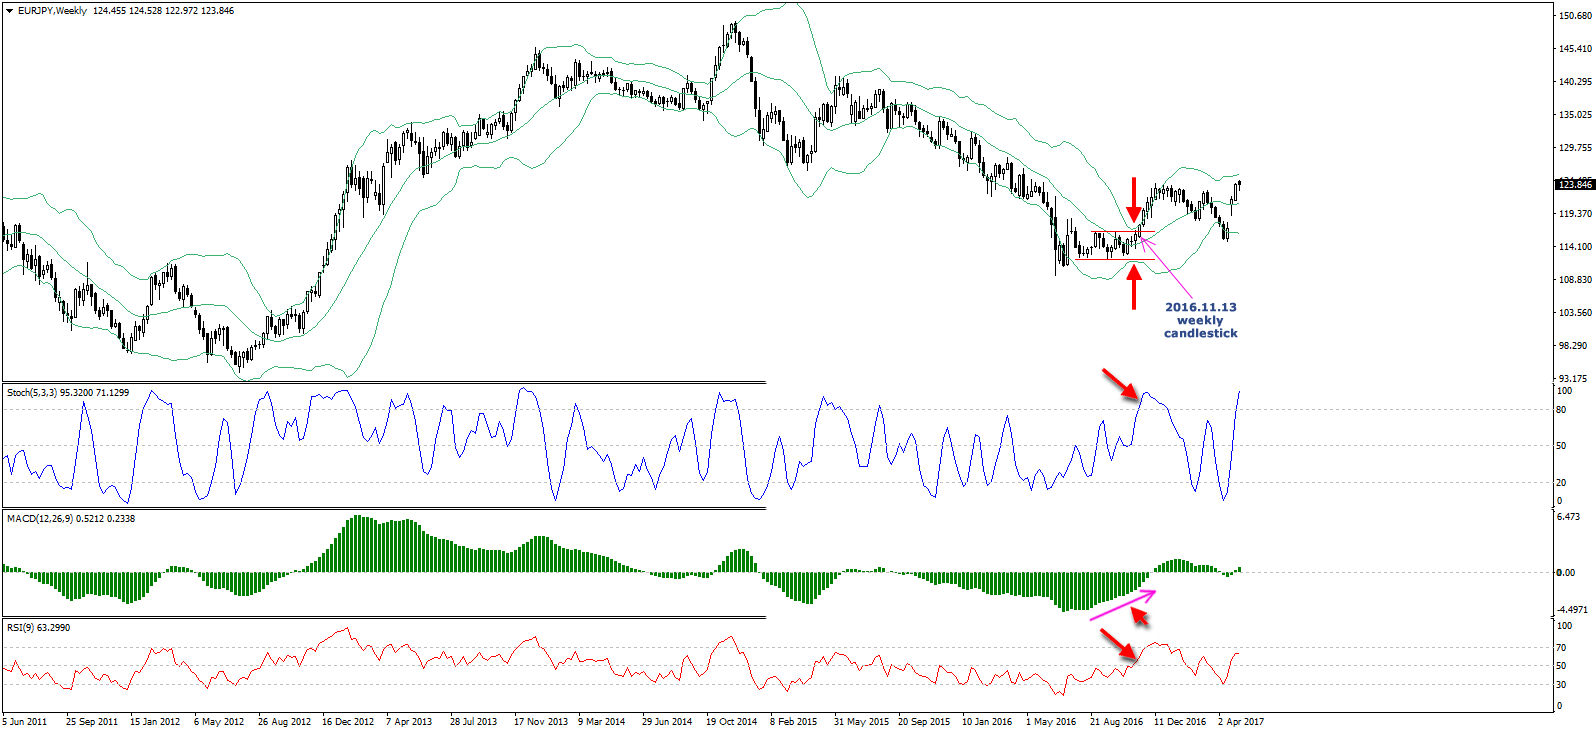 Using bollinger bands with rsi